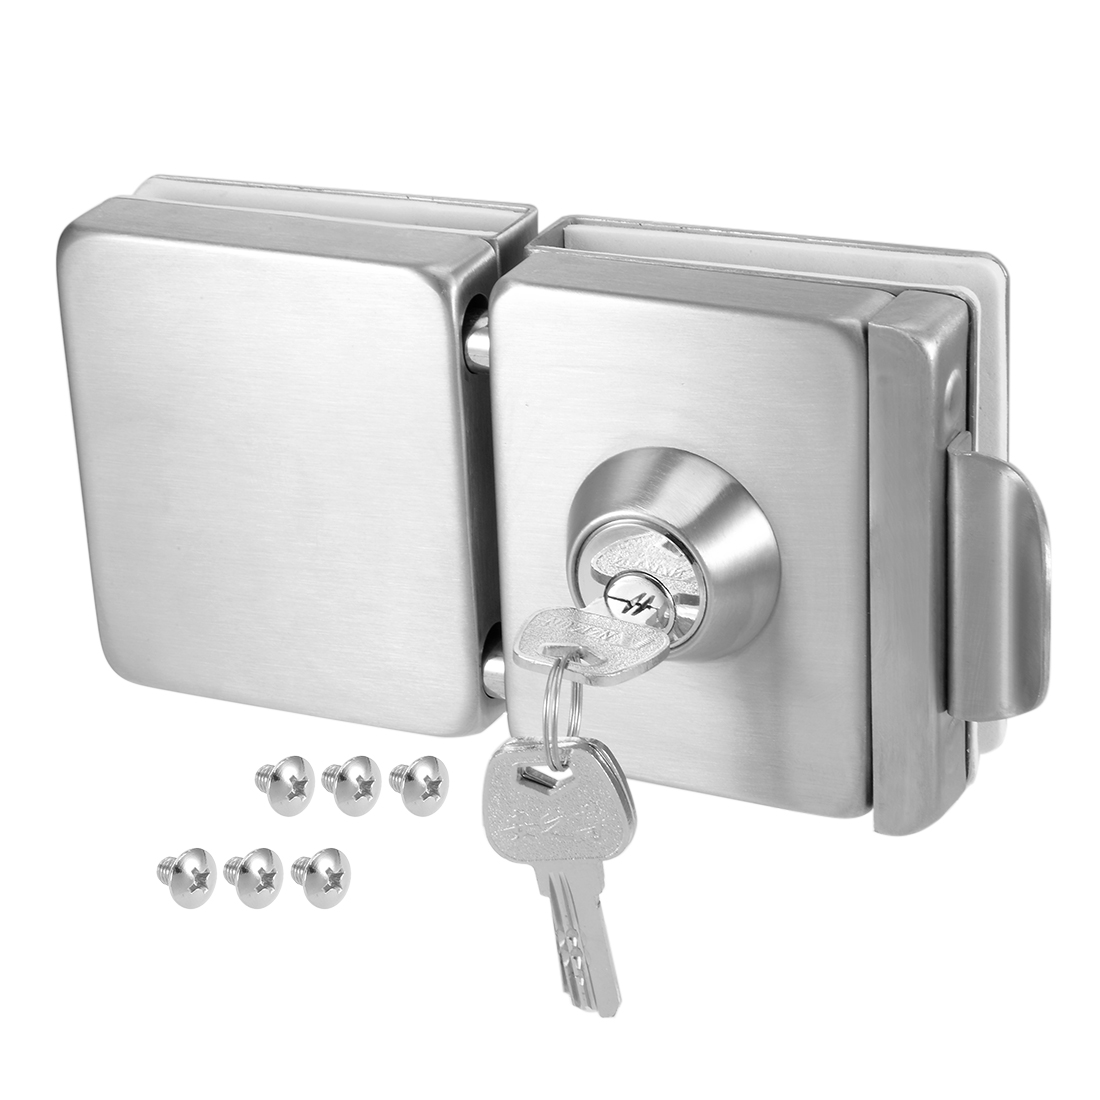 10mm-12mm Glass-to-Glass Door Double Latch Lock Stainless Steel Brushed Finish